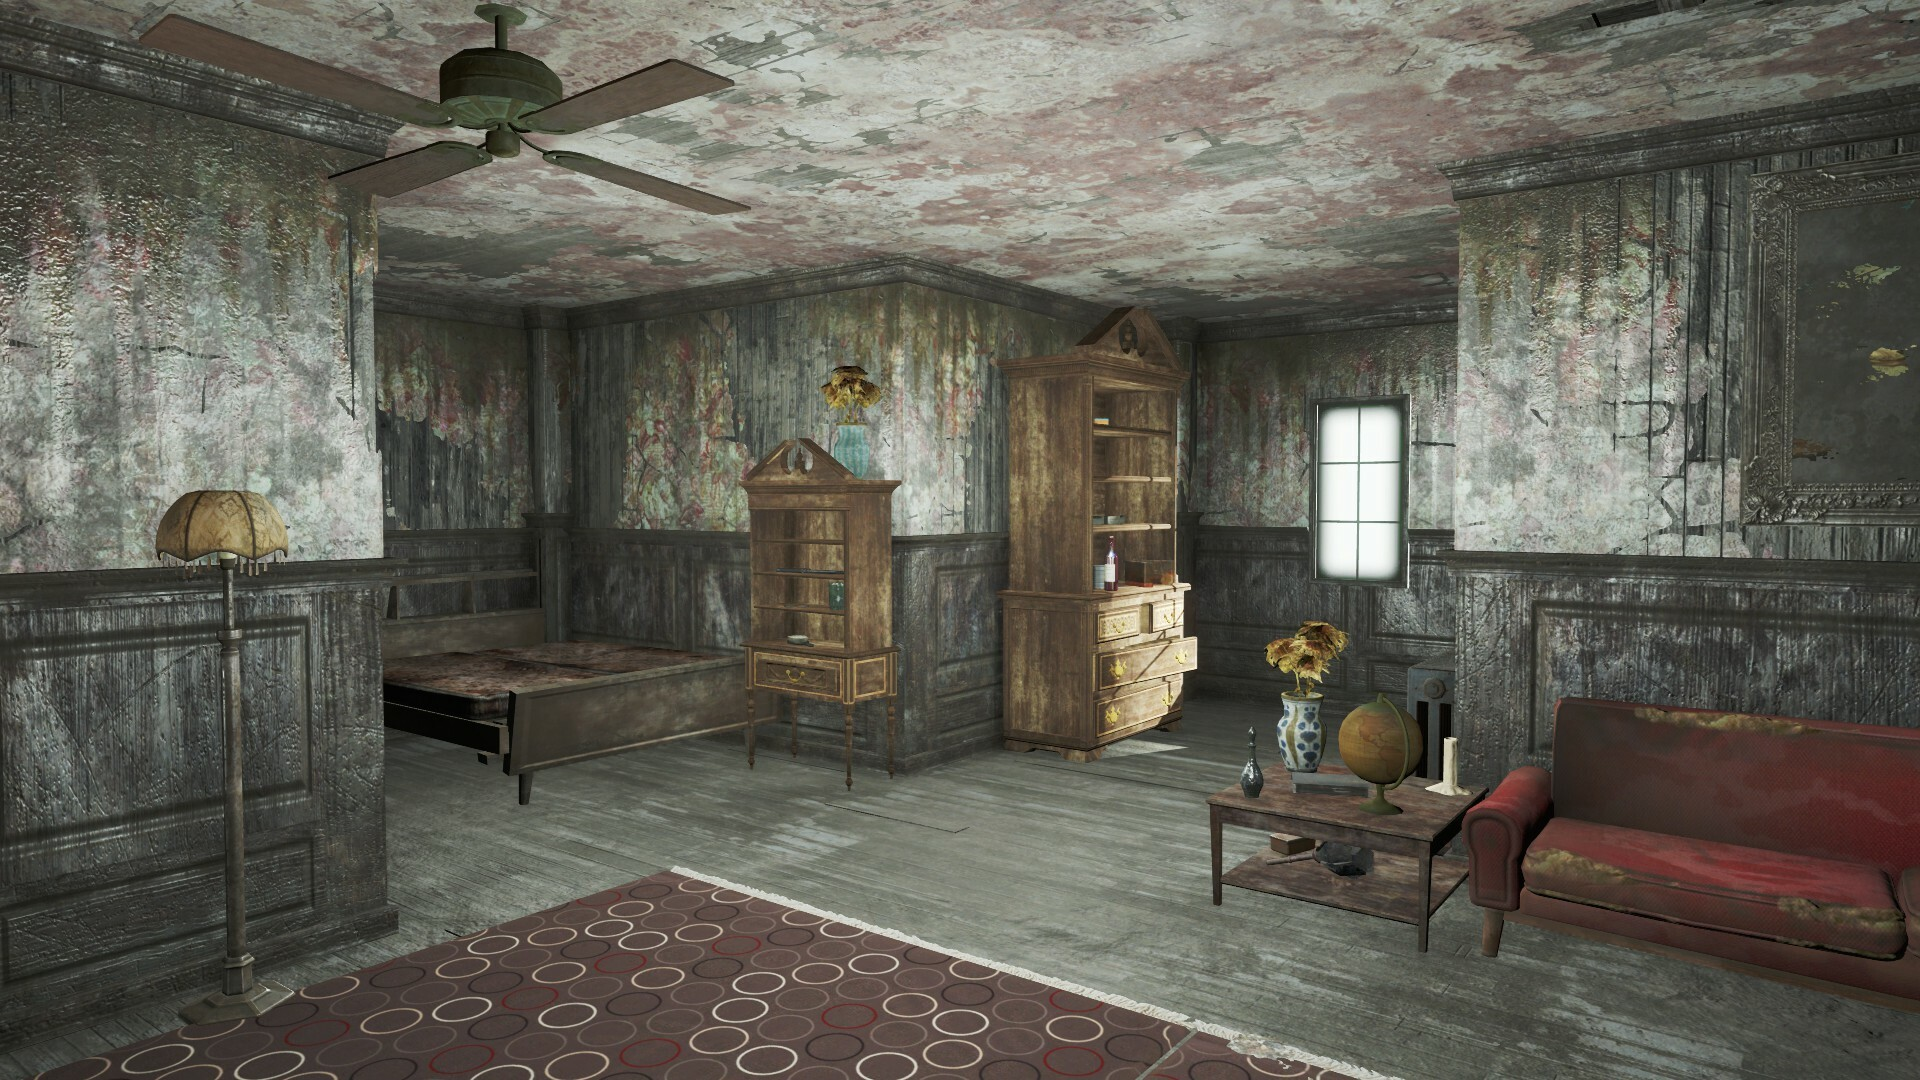 The guest rooms are all very different so the player can differentiate between them when exploring.